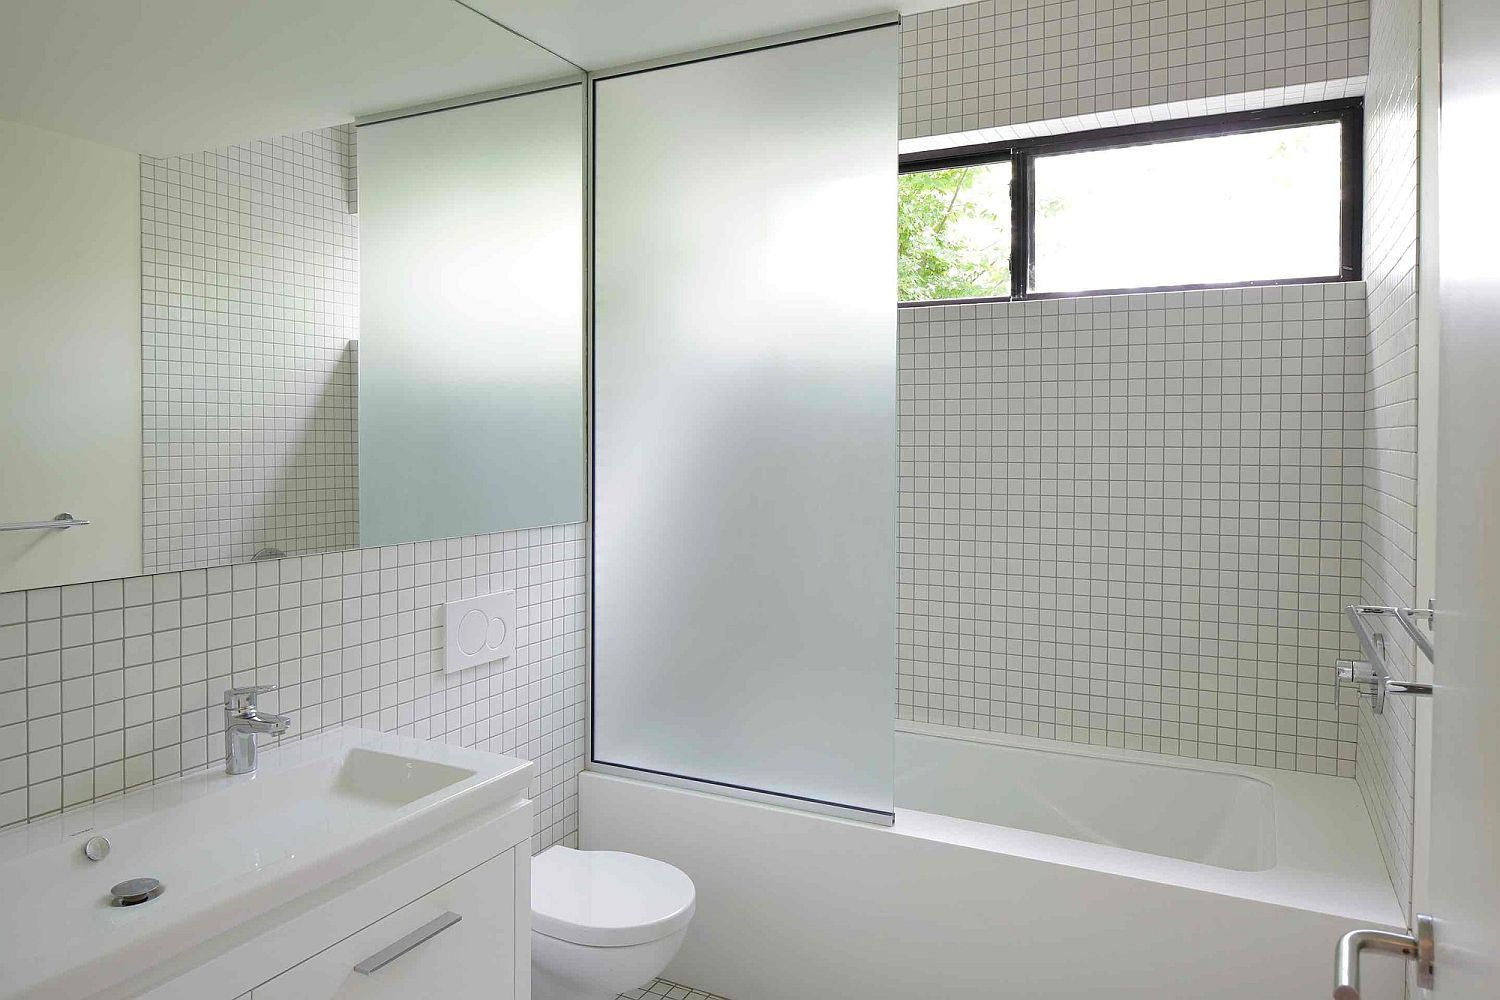 Contemporary-bathroom-in-white-tiled-walls